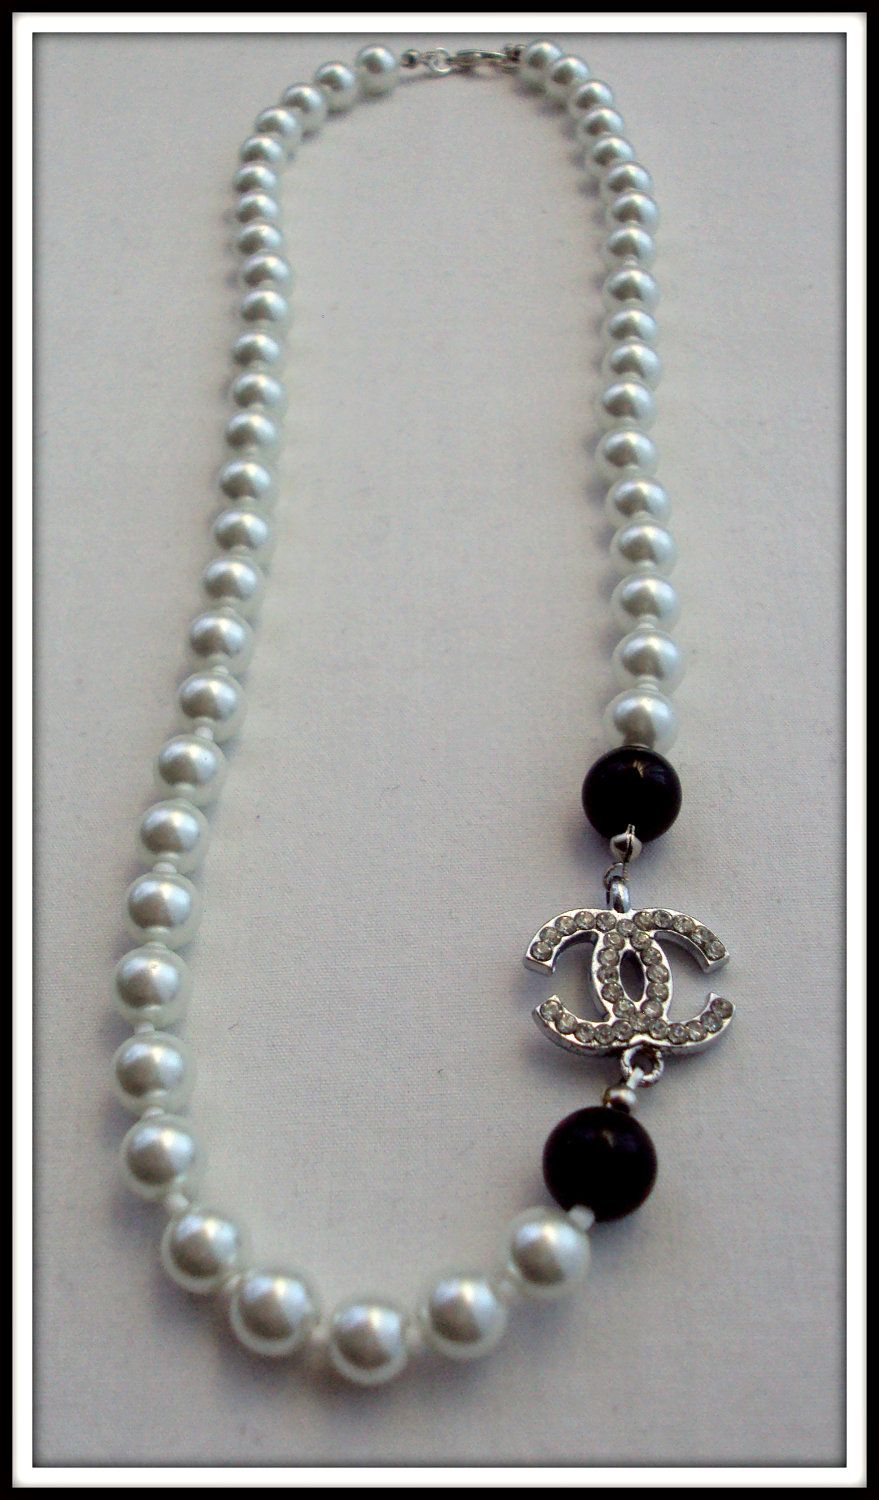 The Best Way To Wear Your Pearl Necklace Joyeria De Chanel